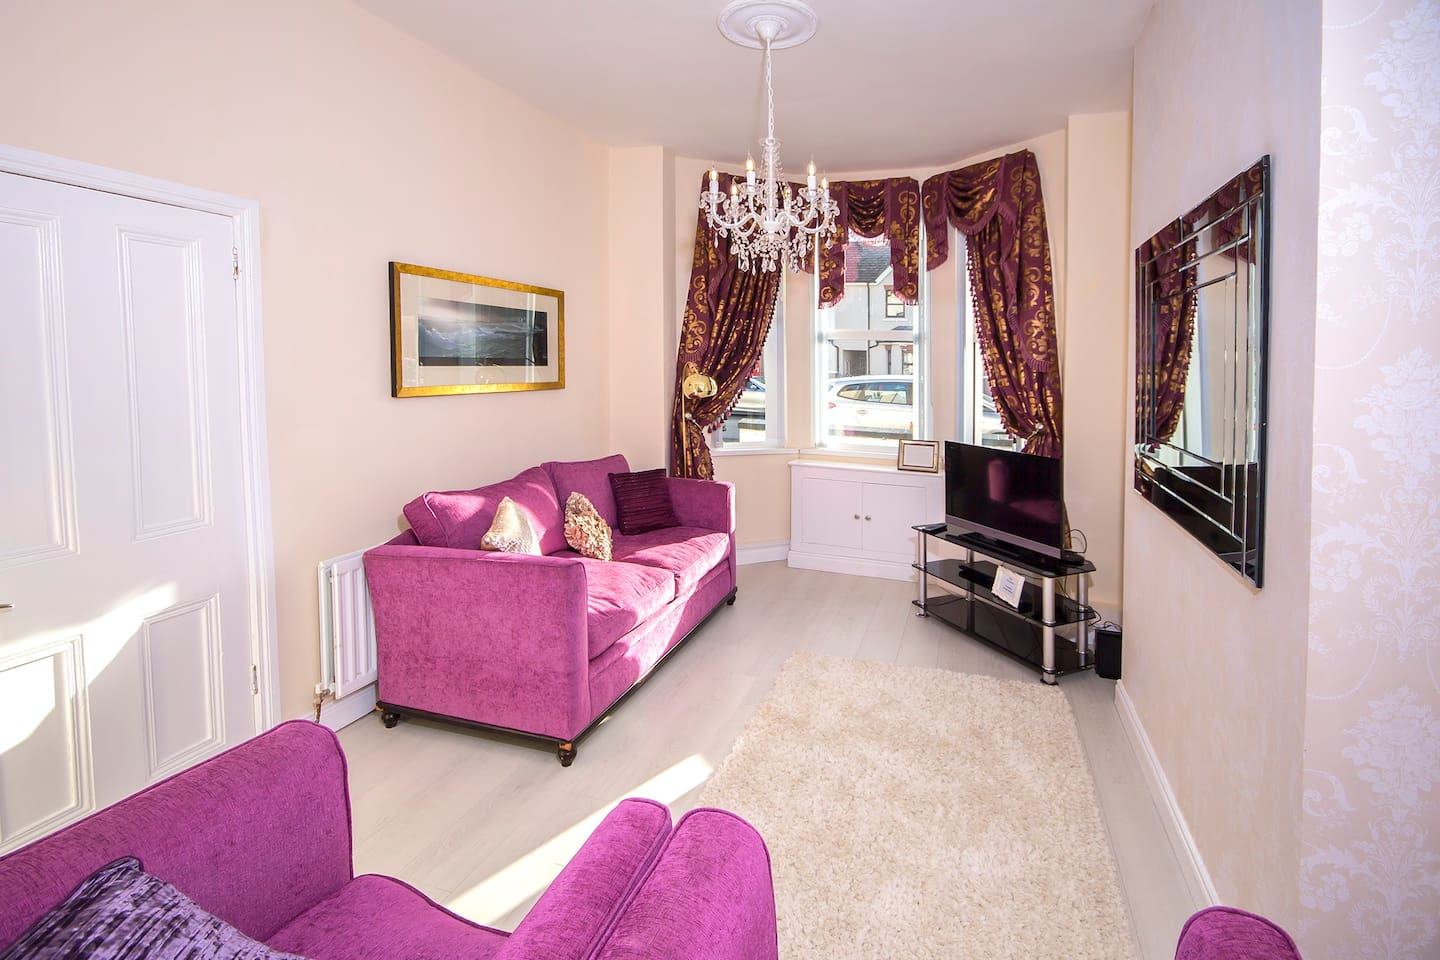 18 Shaftesbury is the hight of luxury. Spacious cozy lounge with velvet sofas, 32' smart TV